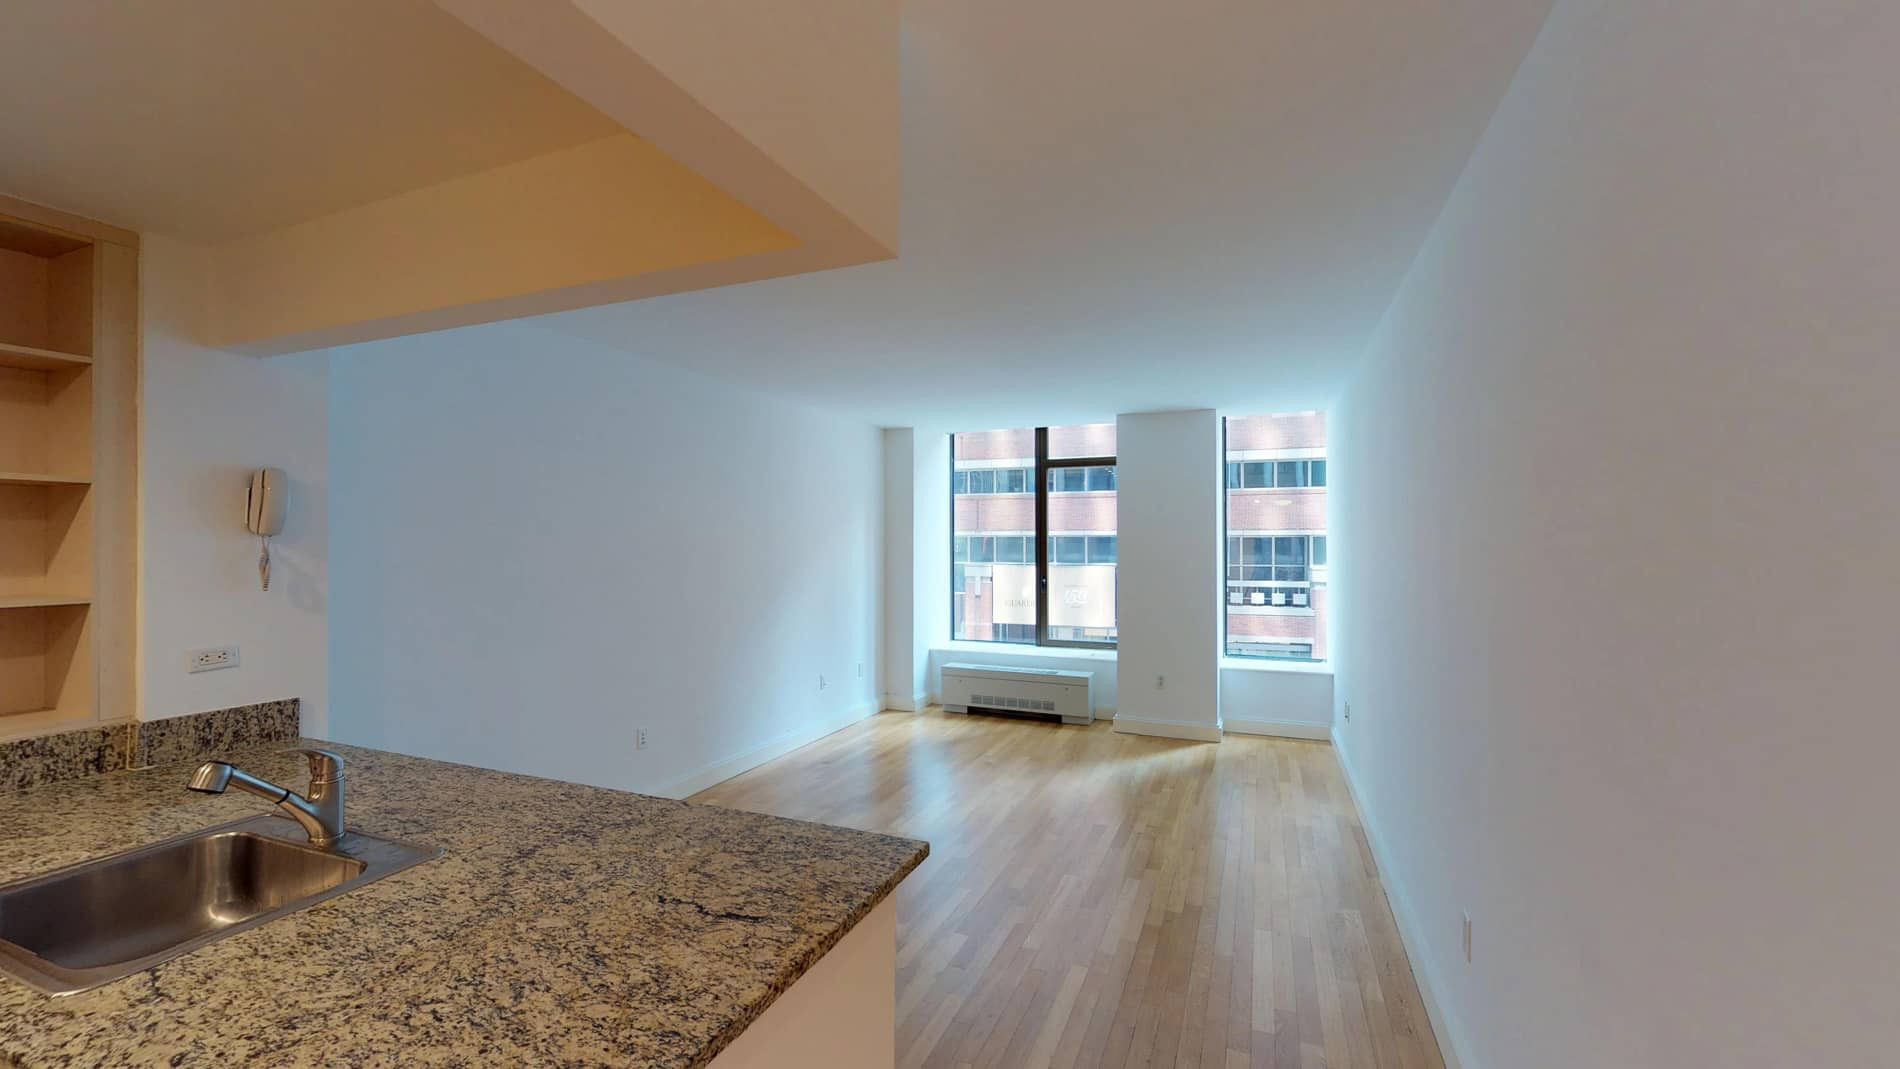 hardwood floor installation cost nyc of floor plans and pricing for 10 hanover square apartments lower with floor plans and pricing for 10 hanover square apartments lower manhattan